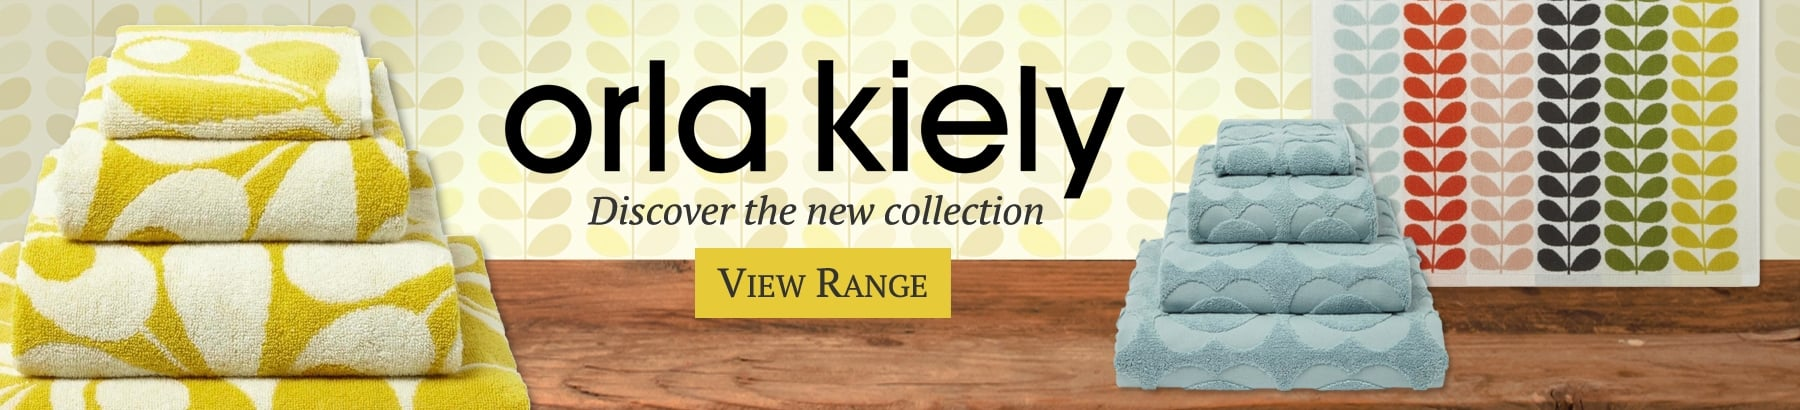 Orla Kiely Towels